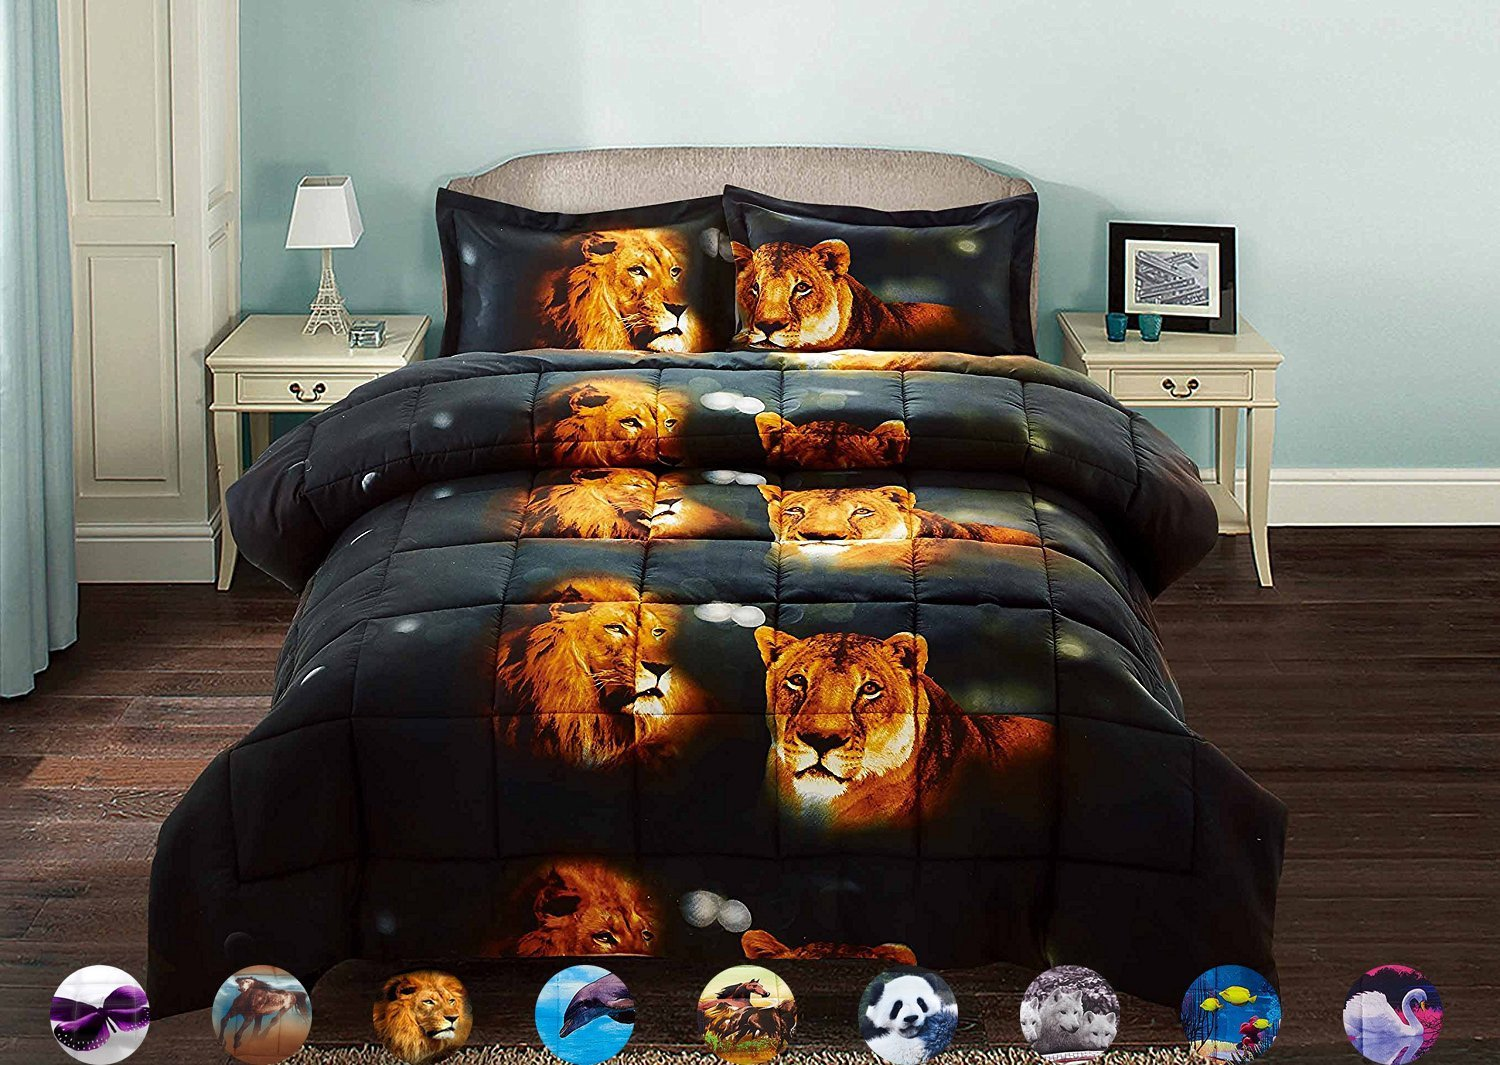 HUAJIE 2 Piece Set Beautiful Soft 3d Print Vivid Animals Pattern Box Stitched Comforter Set (1 Comforter,1 Pillowcase) (Twin, Tiger Lion) by HUAJIE (Image #1)